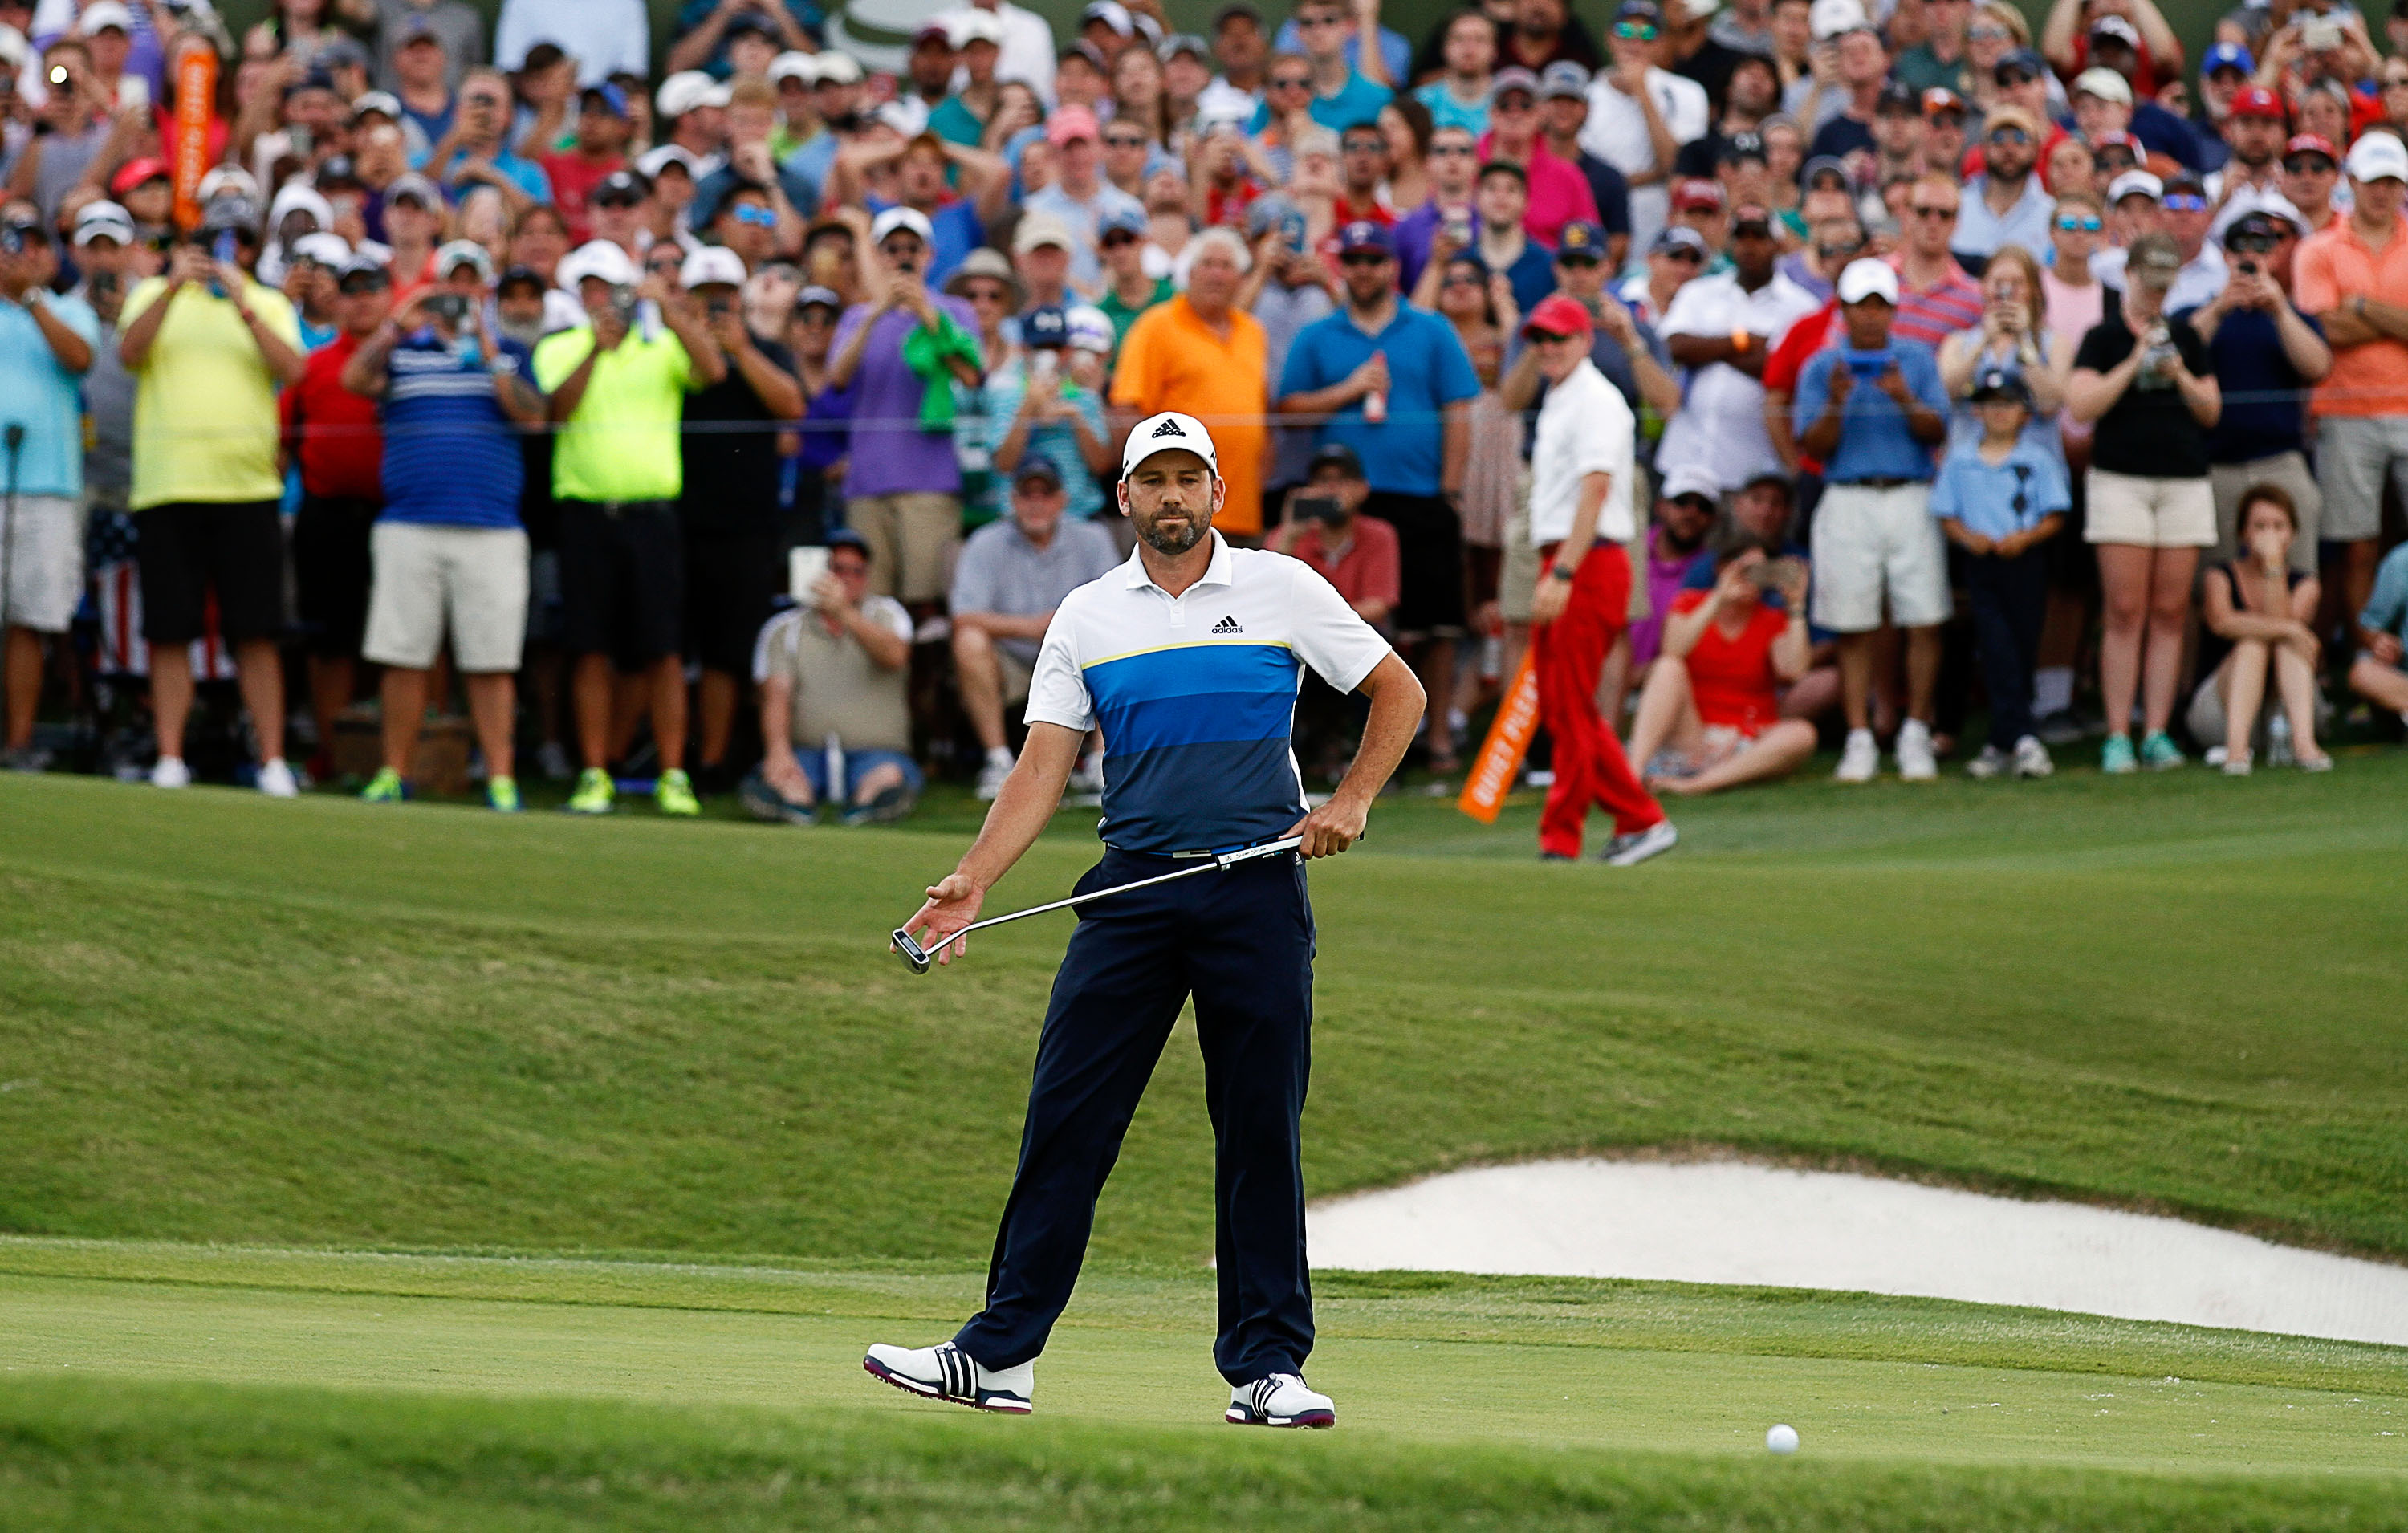 Garcia rediscovers old touch to be in hunt at Players Championship golf